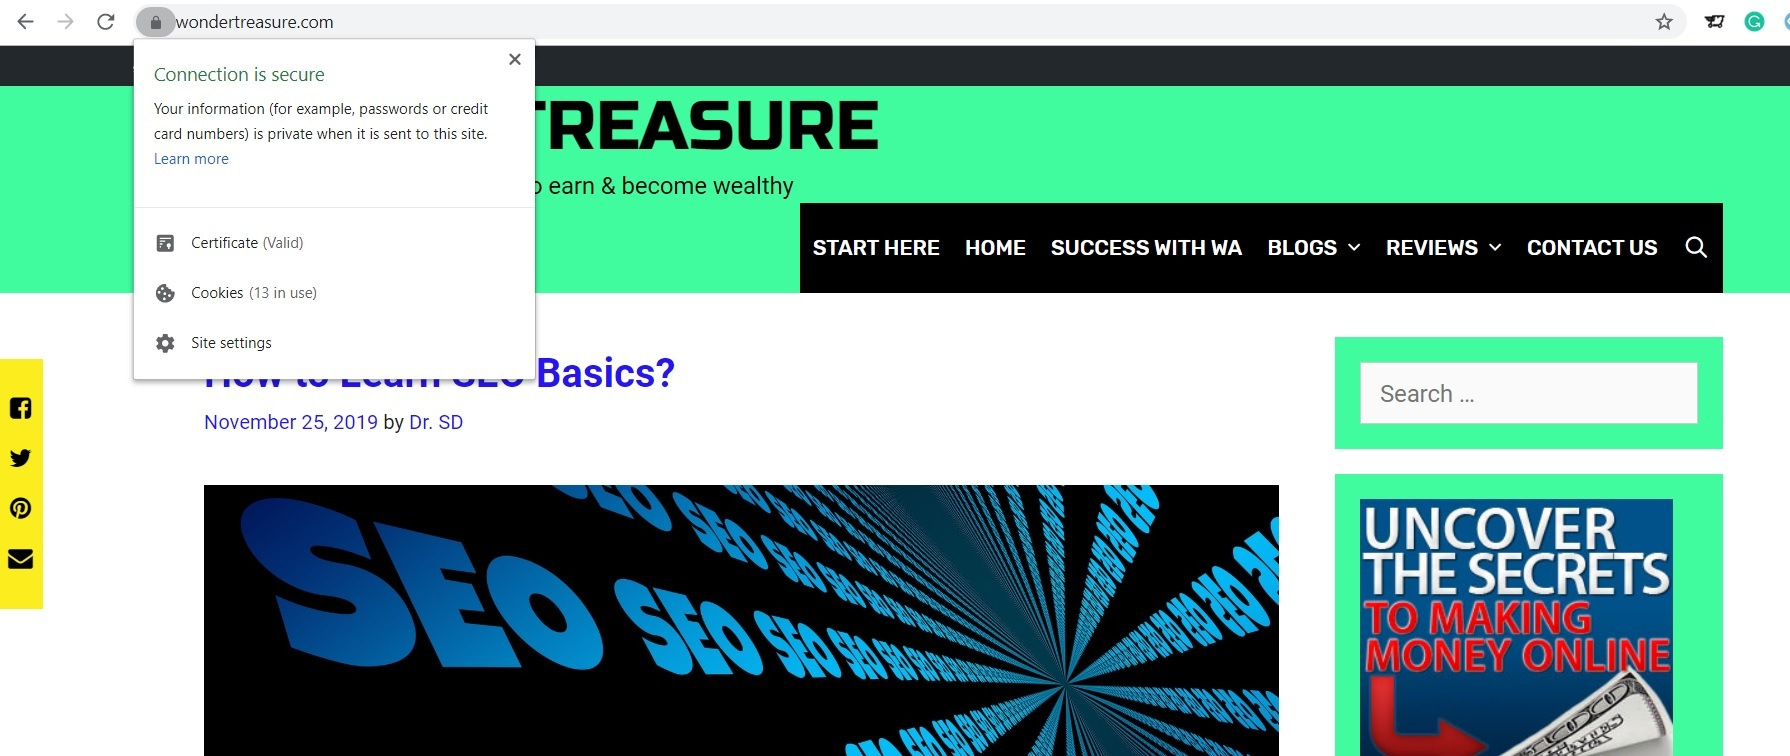 how to learn SEO basics - Secured website